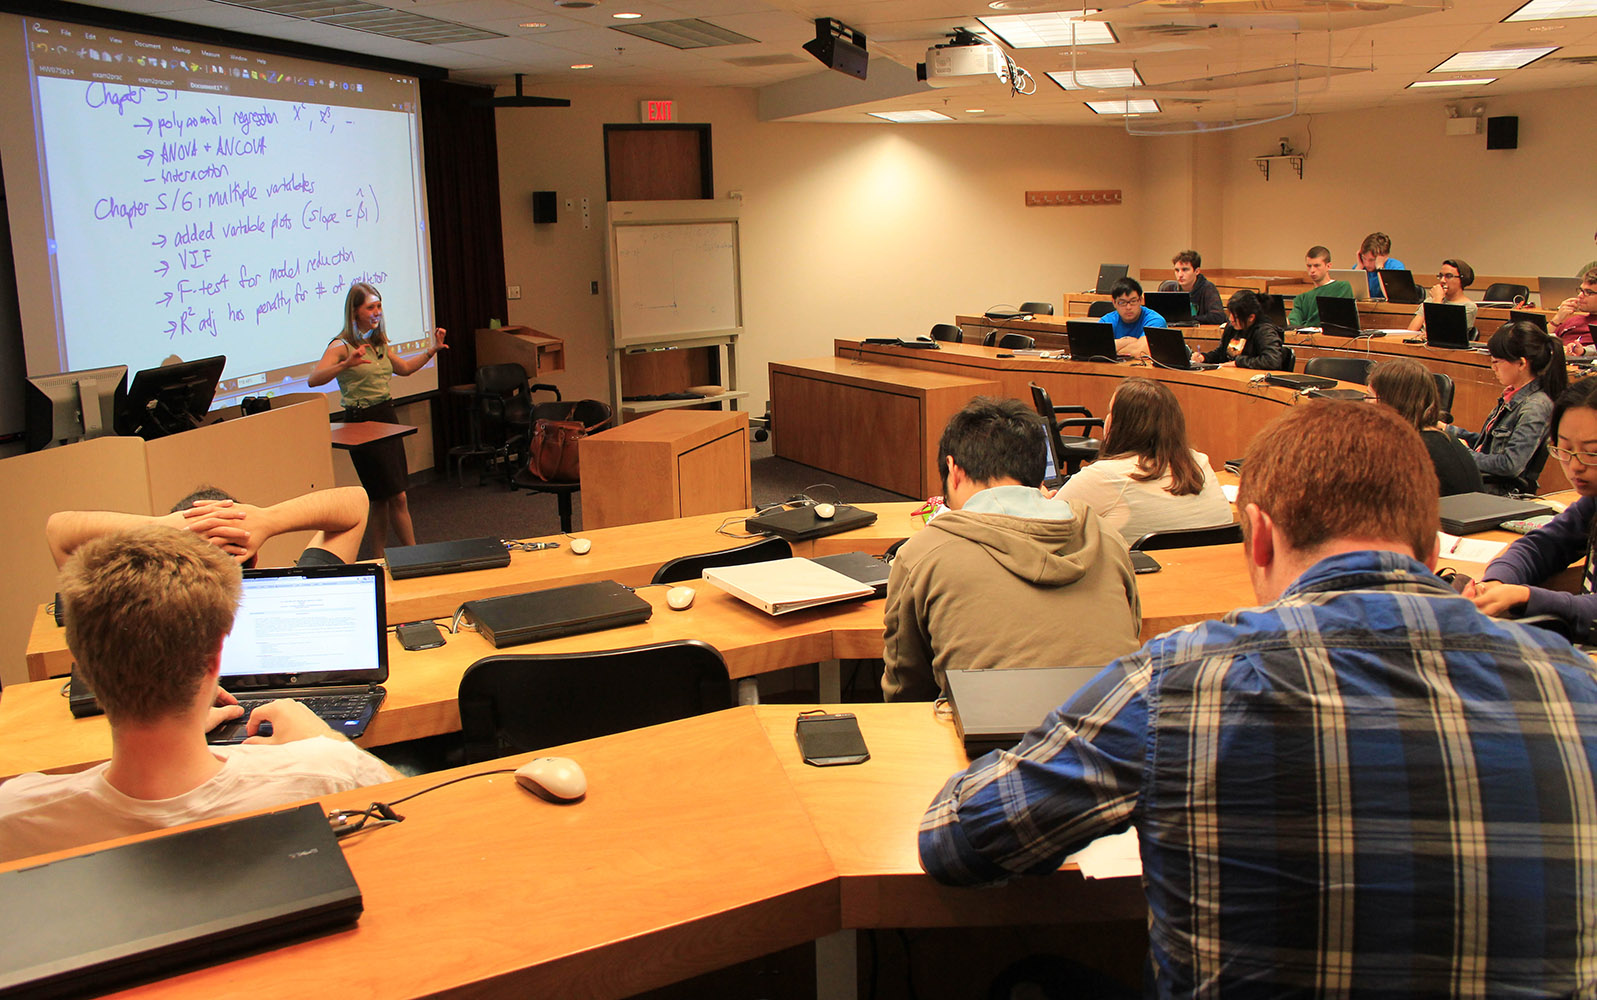 A statistics instructor teaches to a room full of students